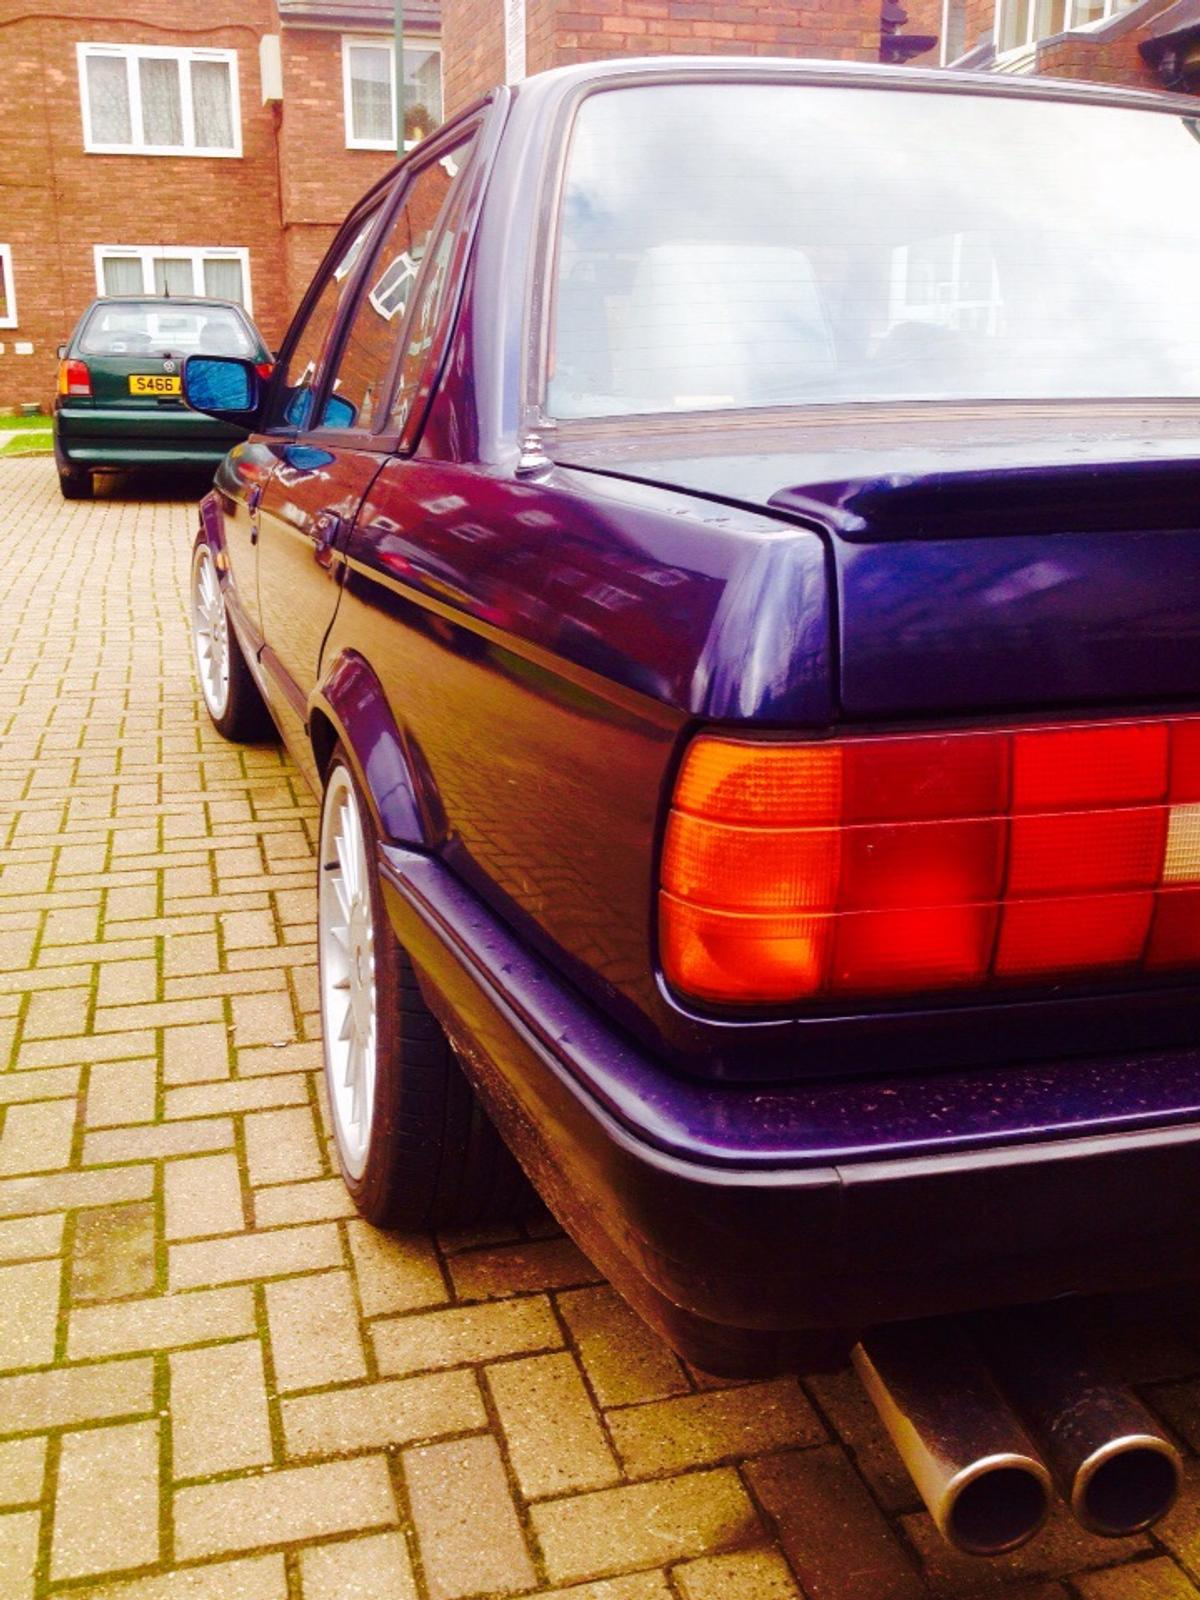 bmw e30 325i manual royal blue in NW10 London for £3,500 00